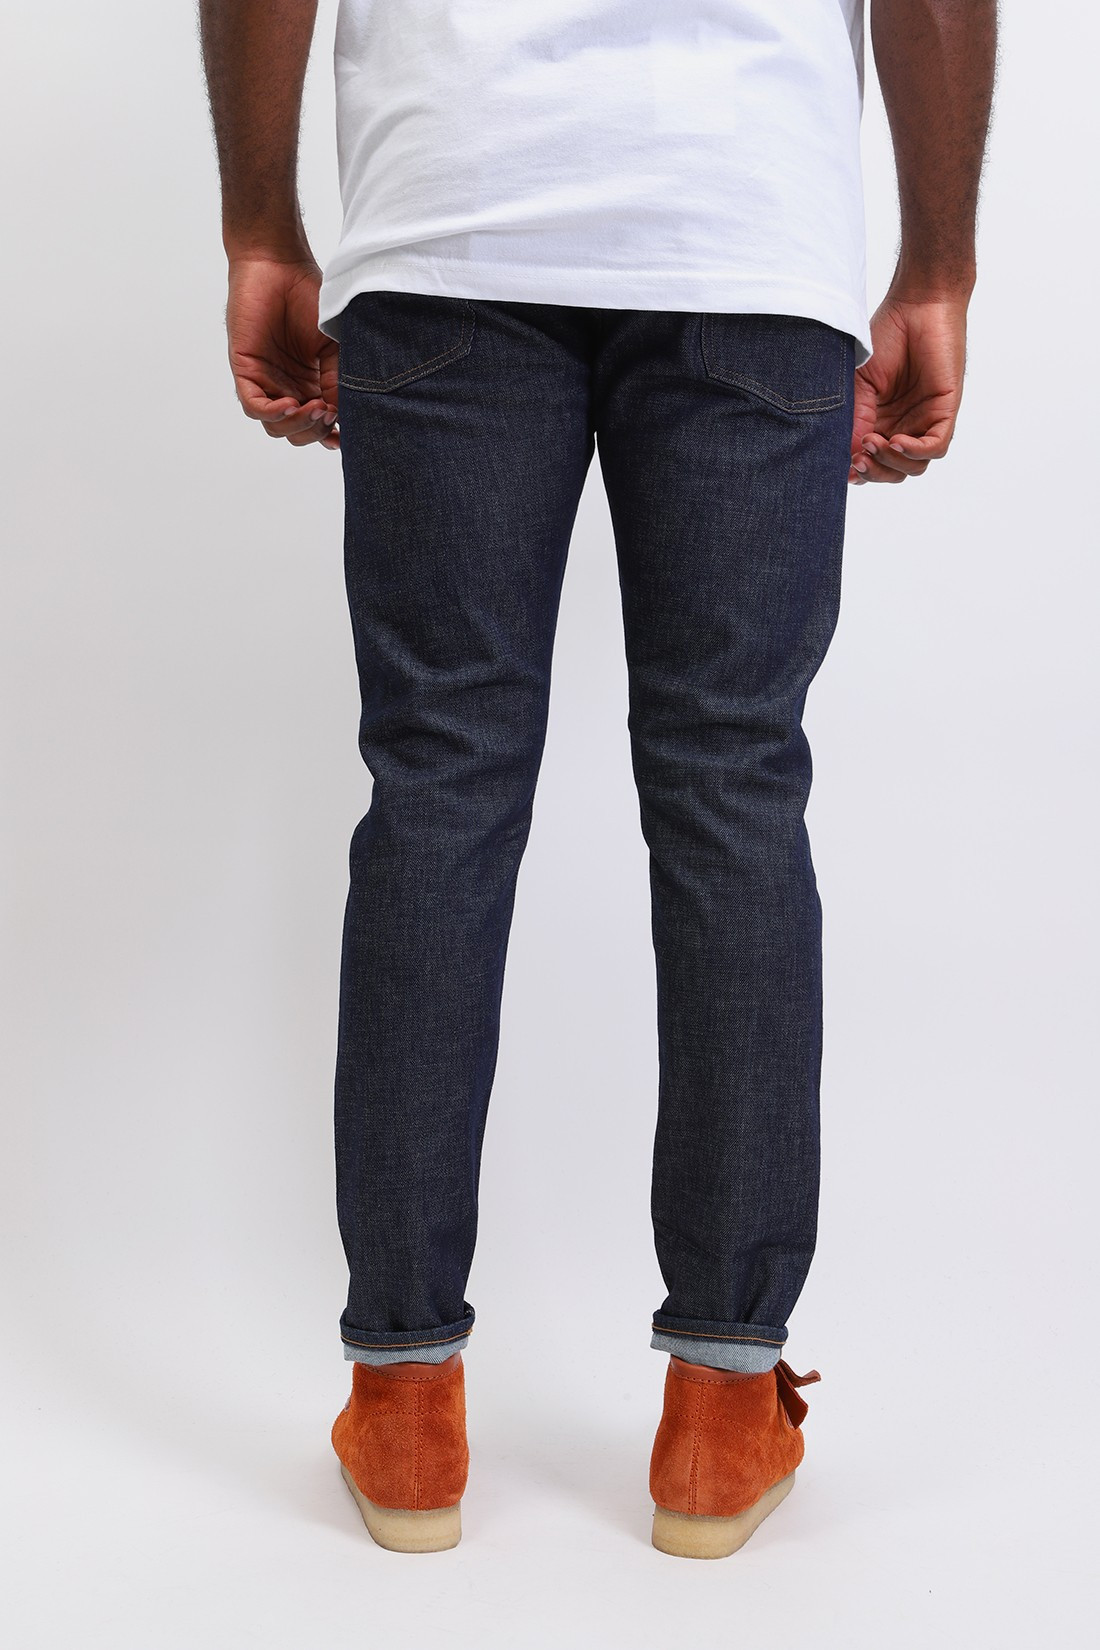 LEVI'S ® MADE AND CRAFTED / Lmc 512 lmc Indigo resin